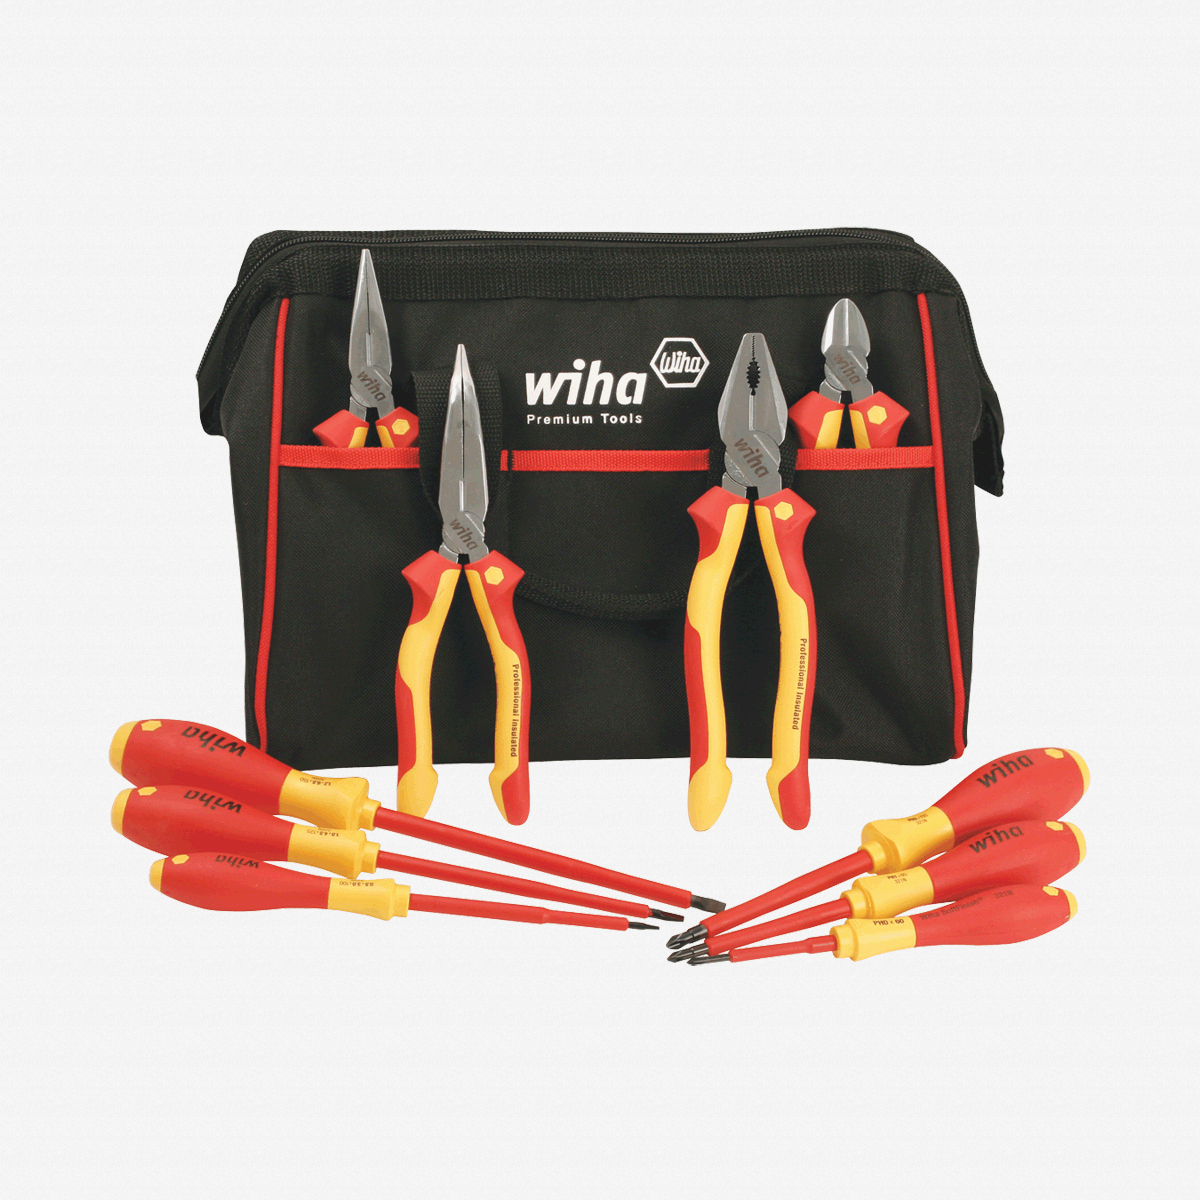 Wiha 32892 10 Piece Insulated Pliers/Cutters/Driver Tool Box - KC Tool